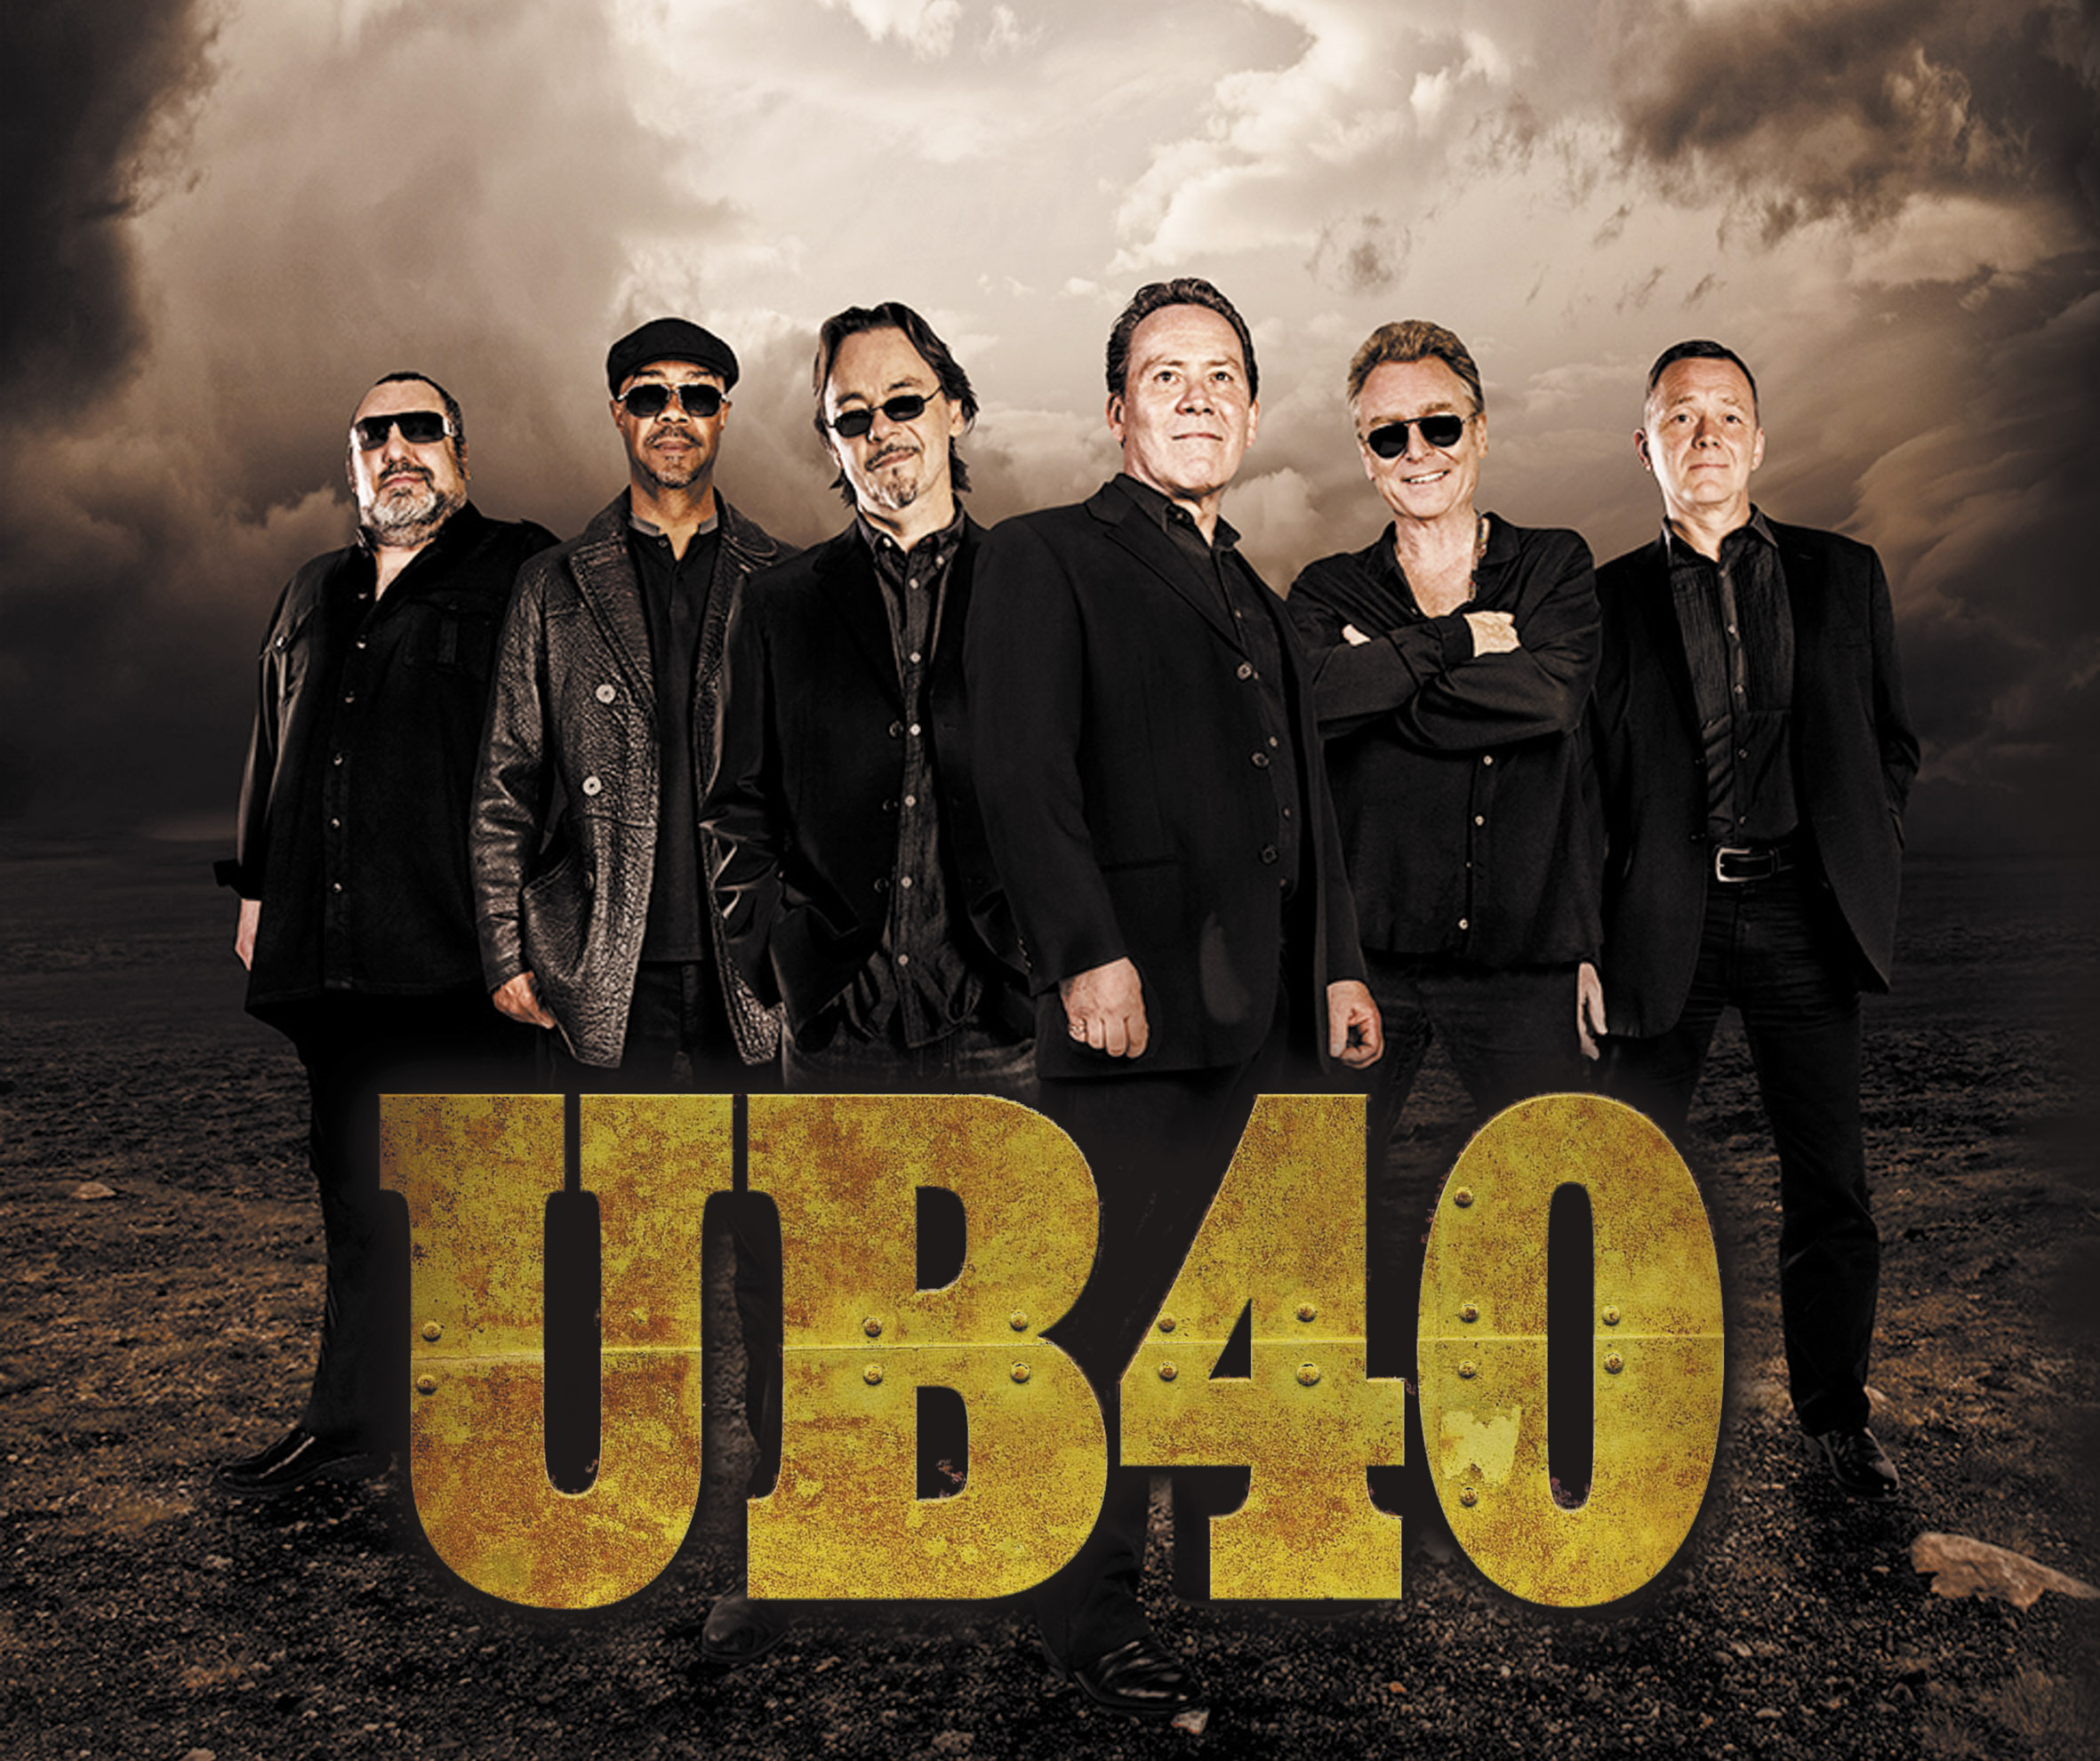 ub40 labour of love download